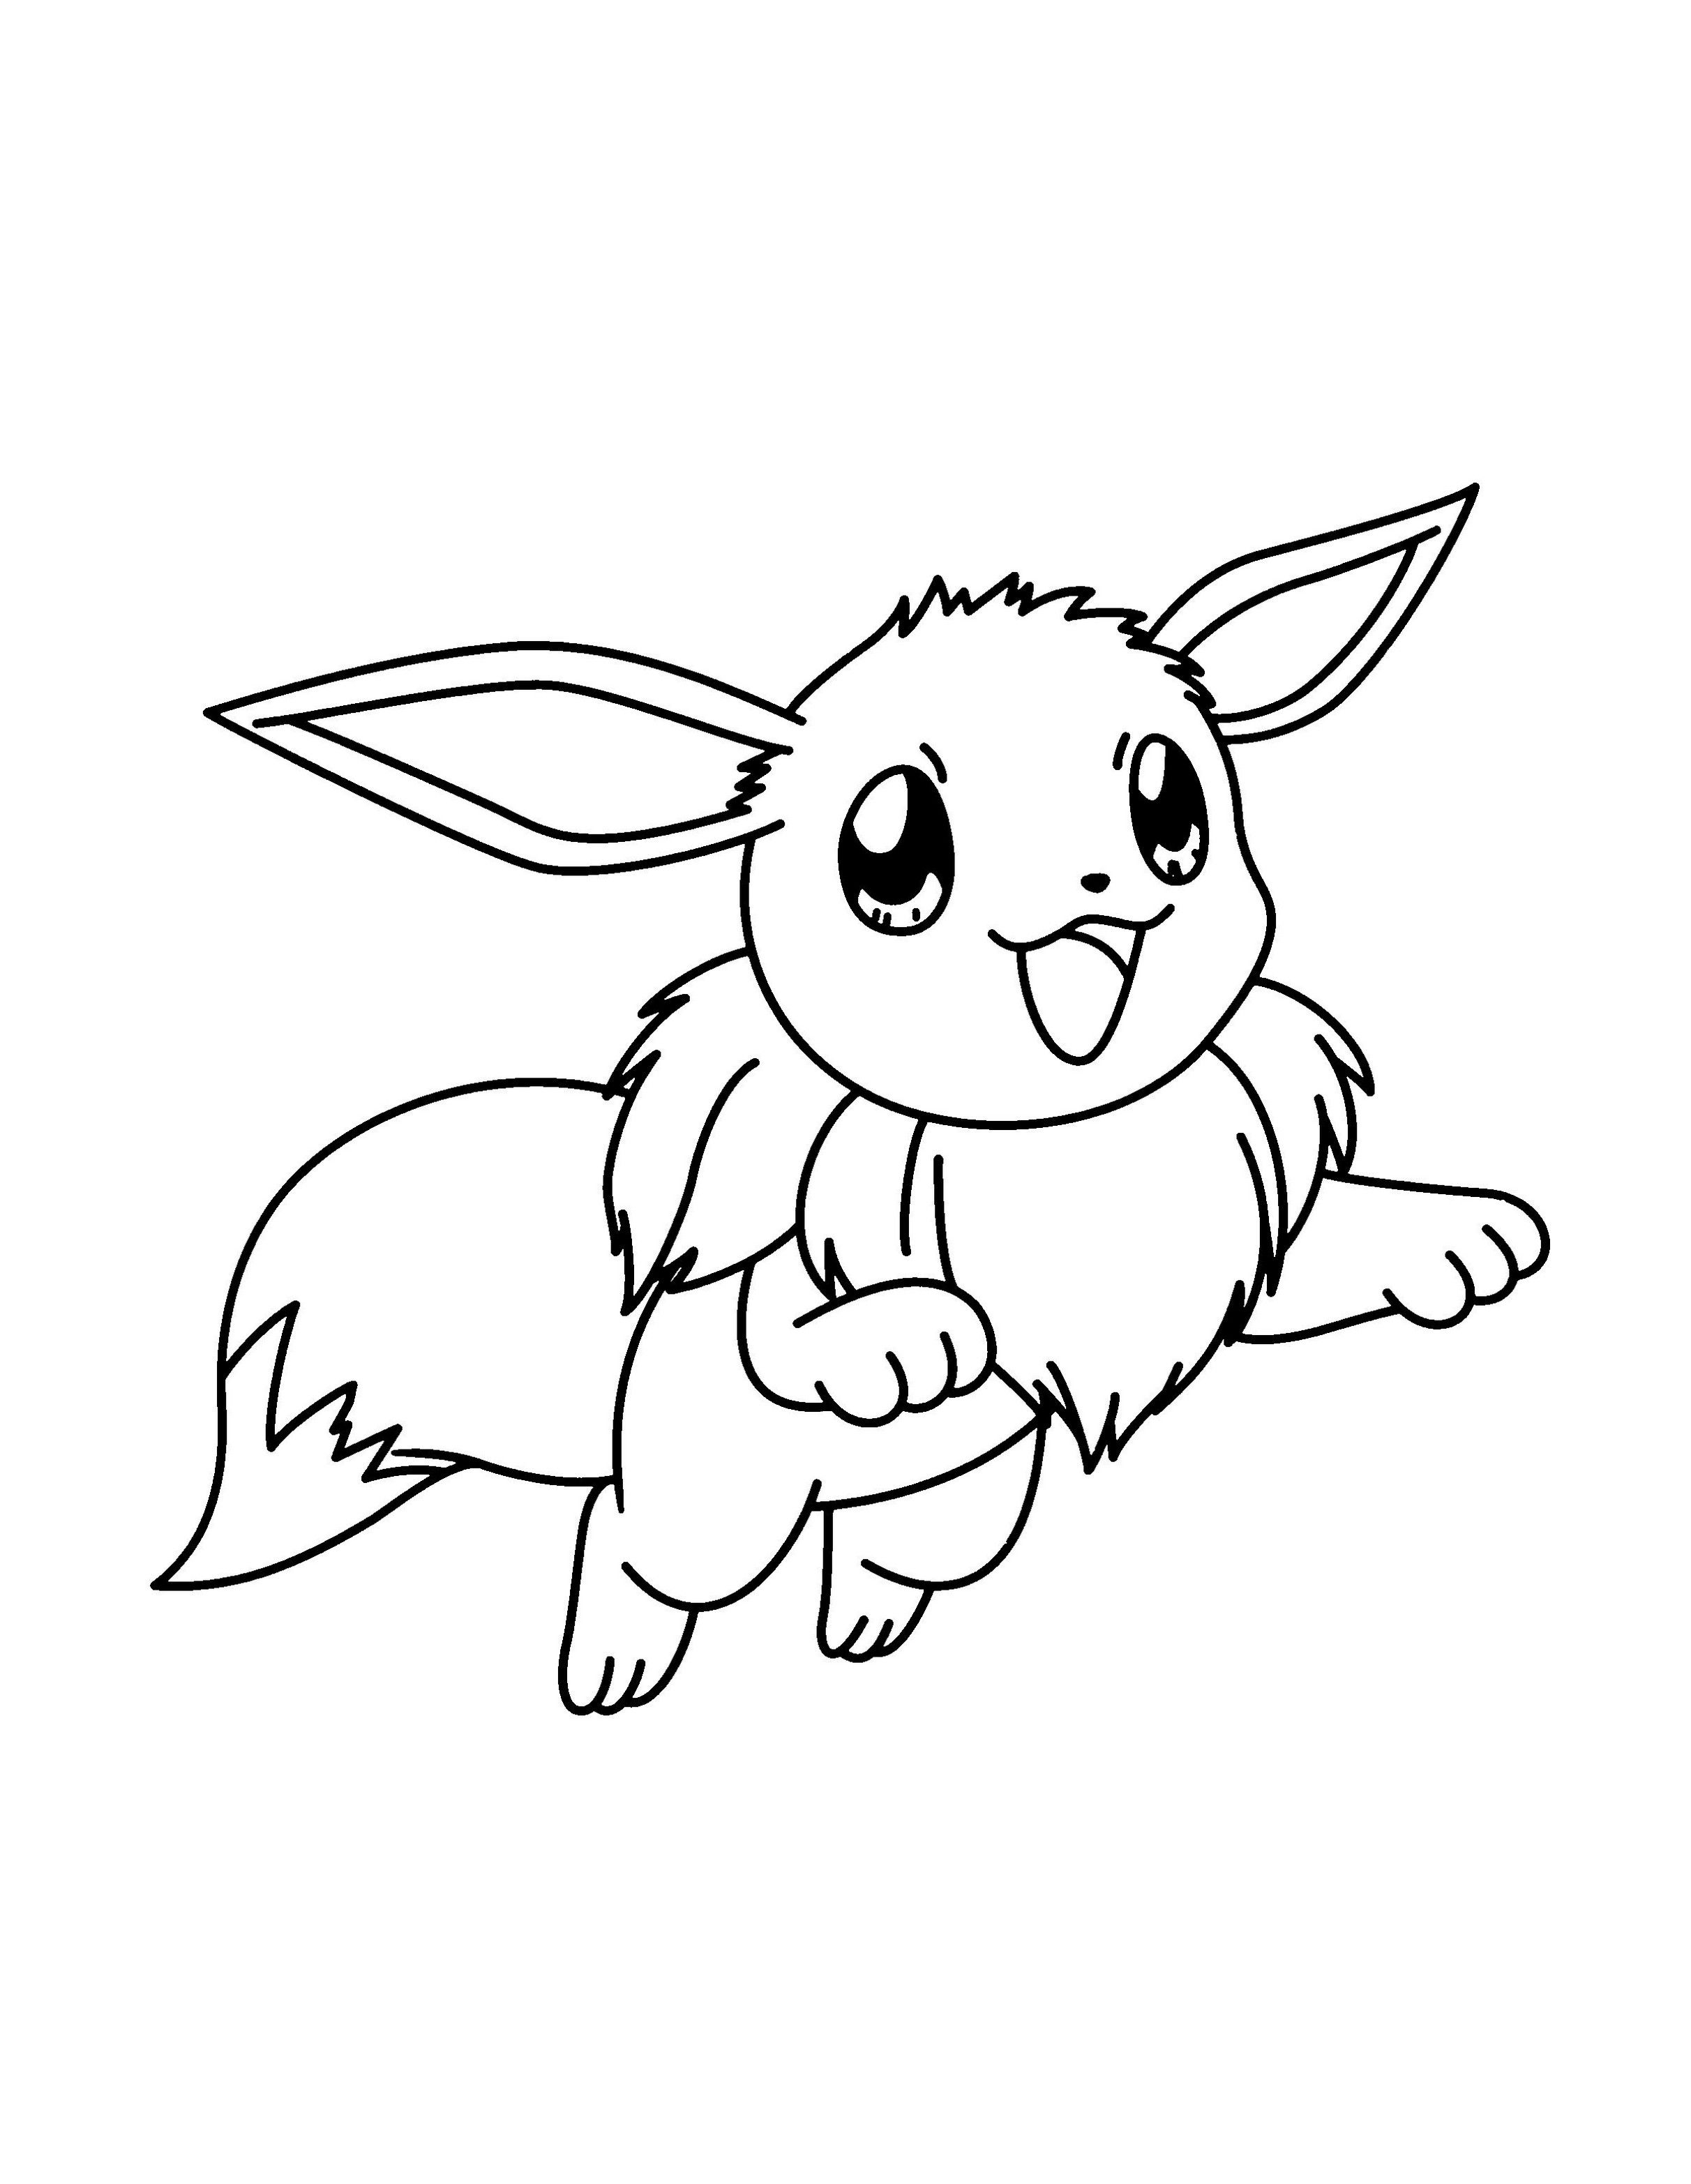 Eevee Coloring Pages Printable Pokemon Coloring Pages Pokemon Coloring Cute Coloring Pages